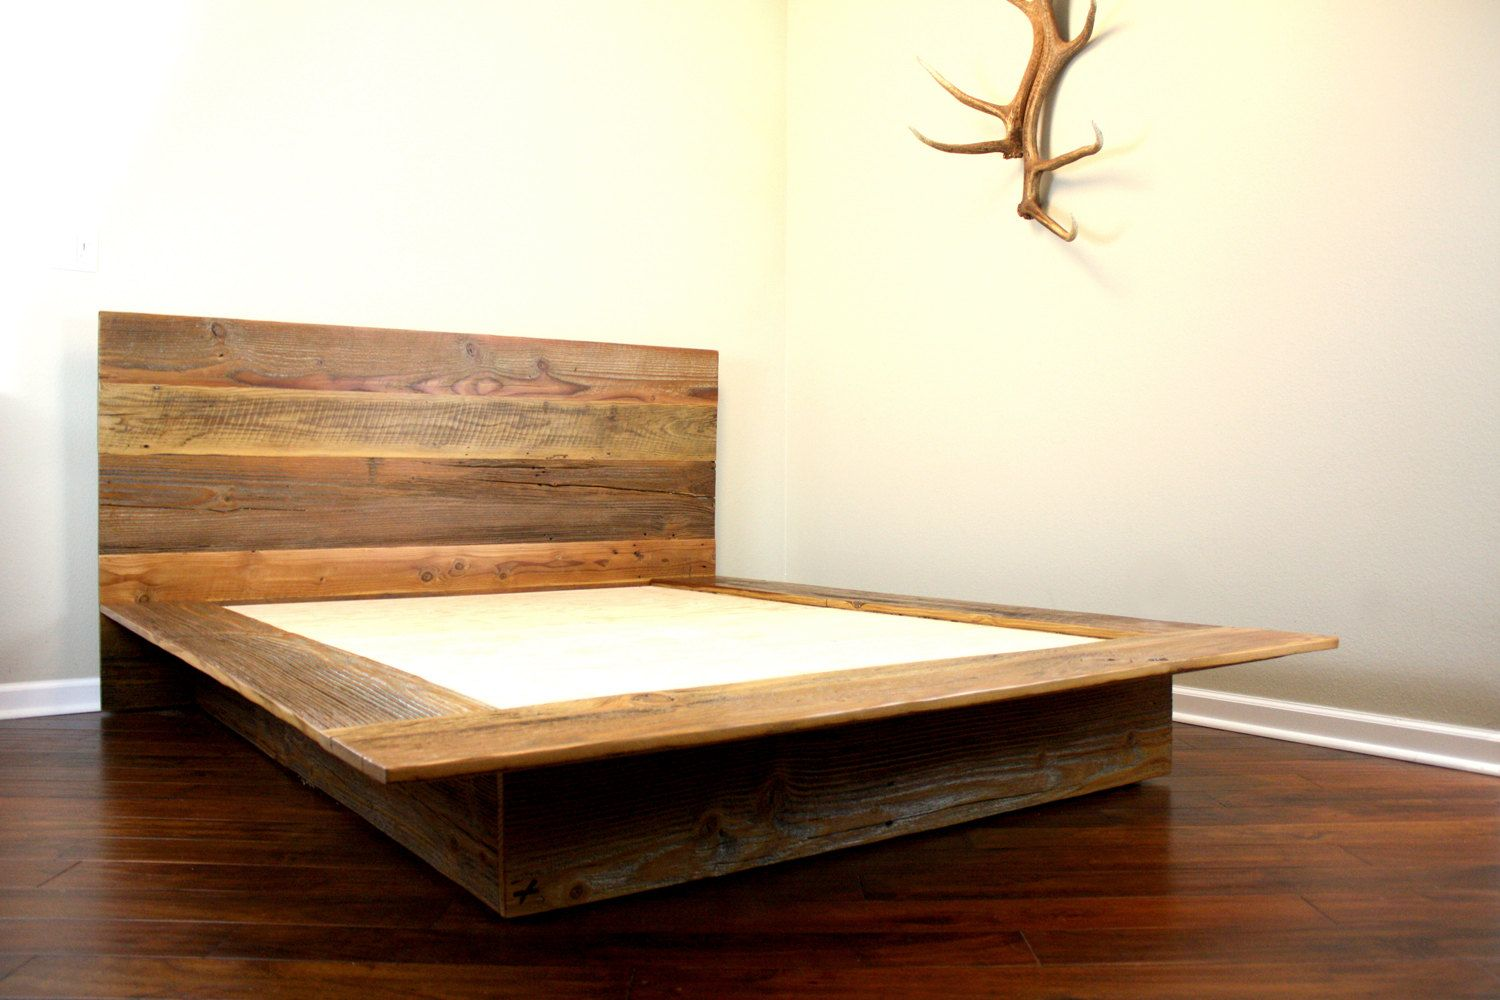 Reclaimed Wood Platform Bed Salvaged Wood Headboard Vintage Fir Plank Bed 2 300 00 Via Etsy Rustic Platform Bed Bed Frame Design Modern Bed Frame